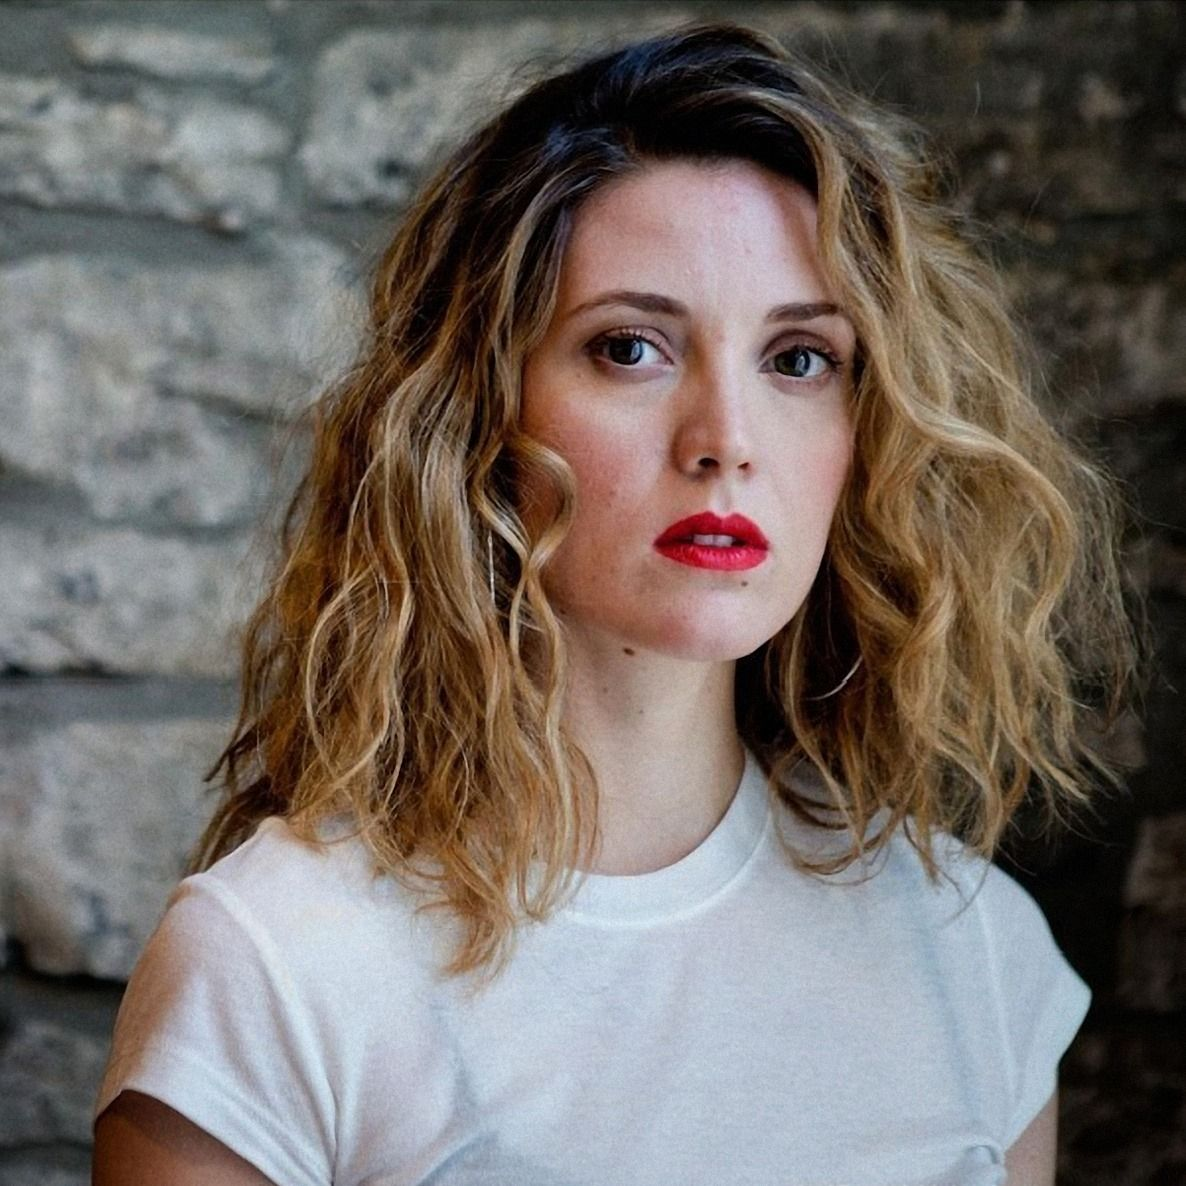 2019 Evelyne Brochu naked (41 photos), Pussy, Leaked, Feet, in bikini 2020